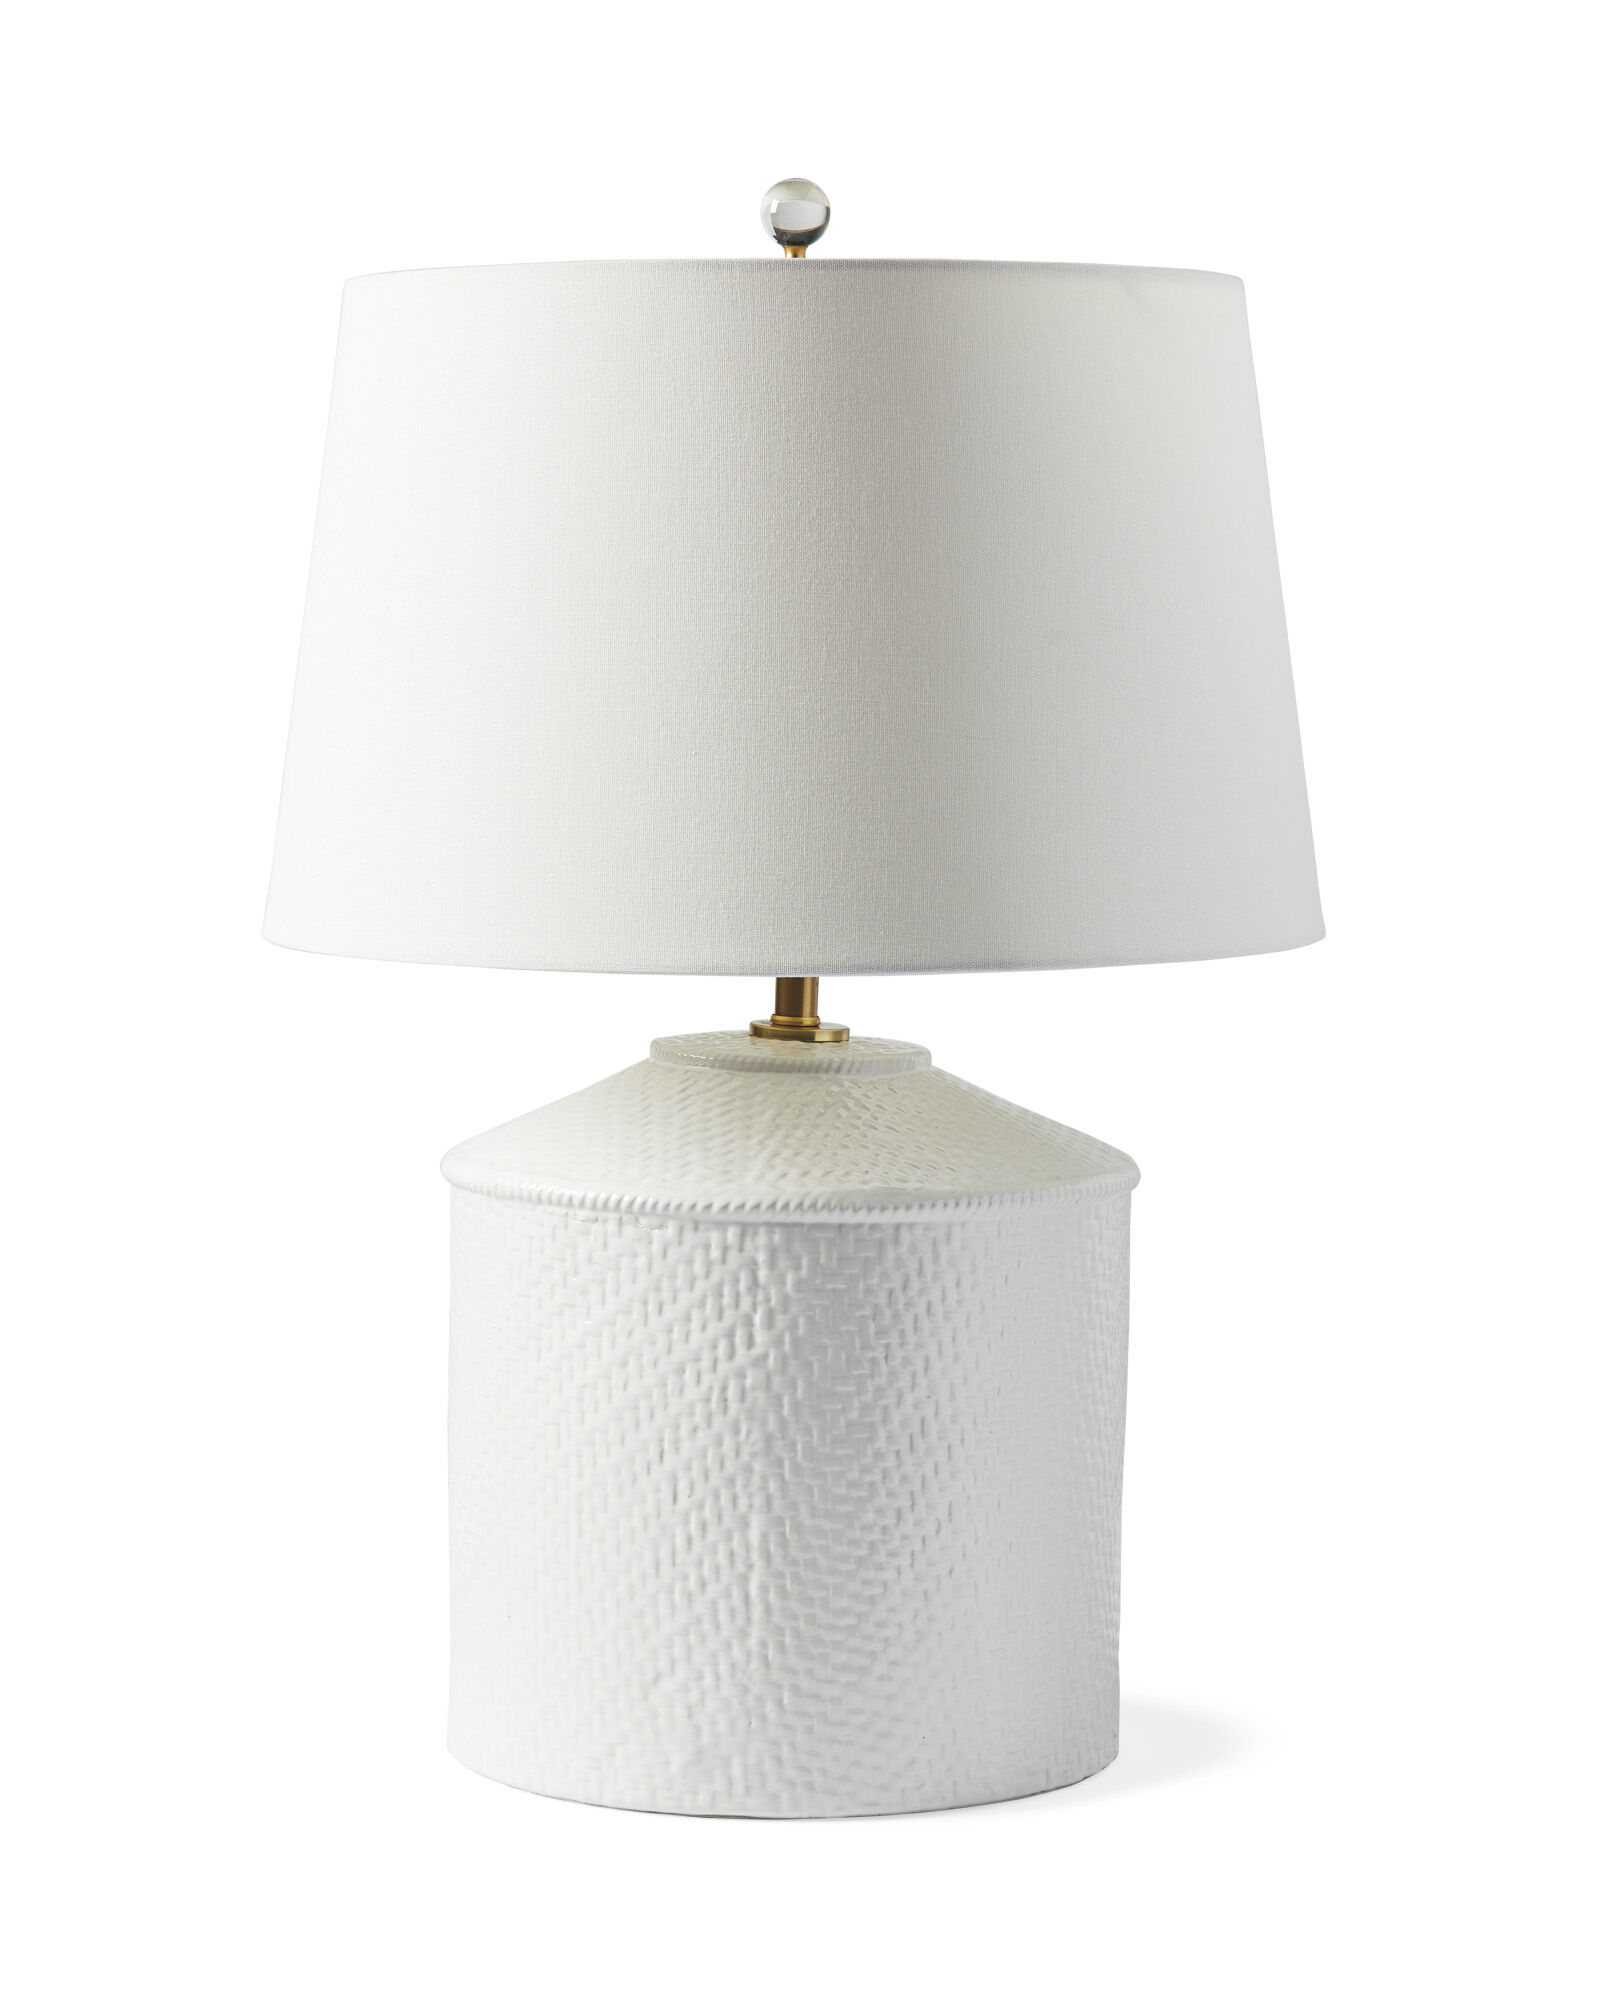 Yorkville Table Lamp,